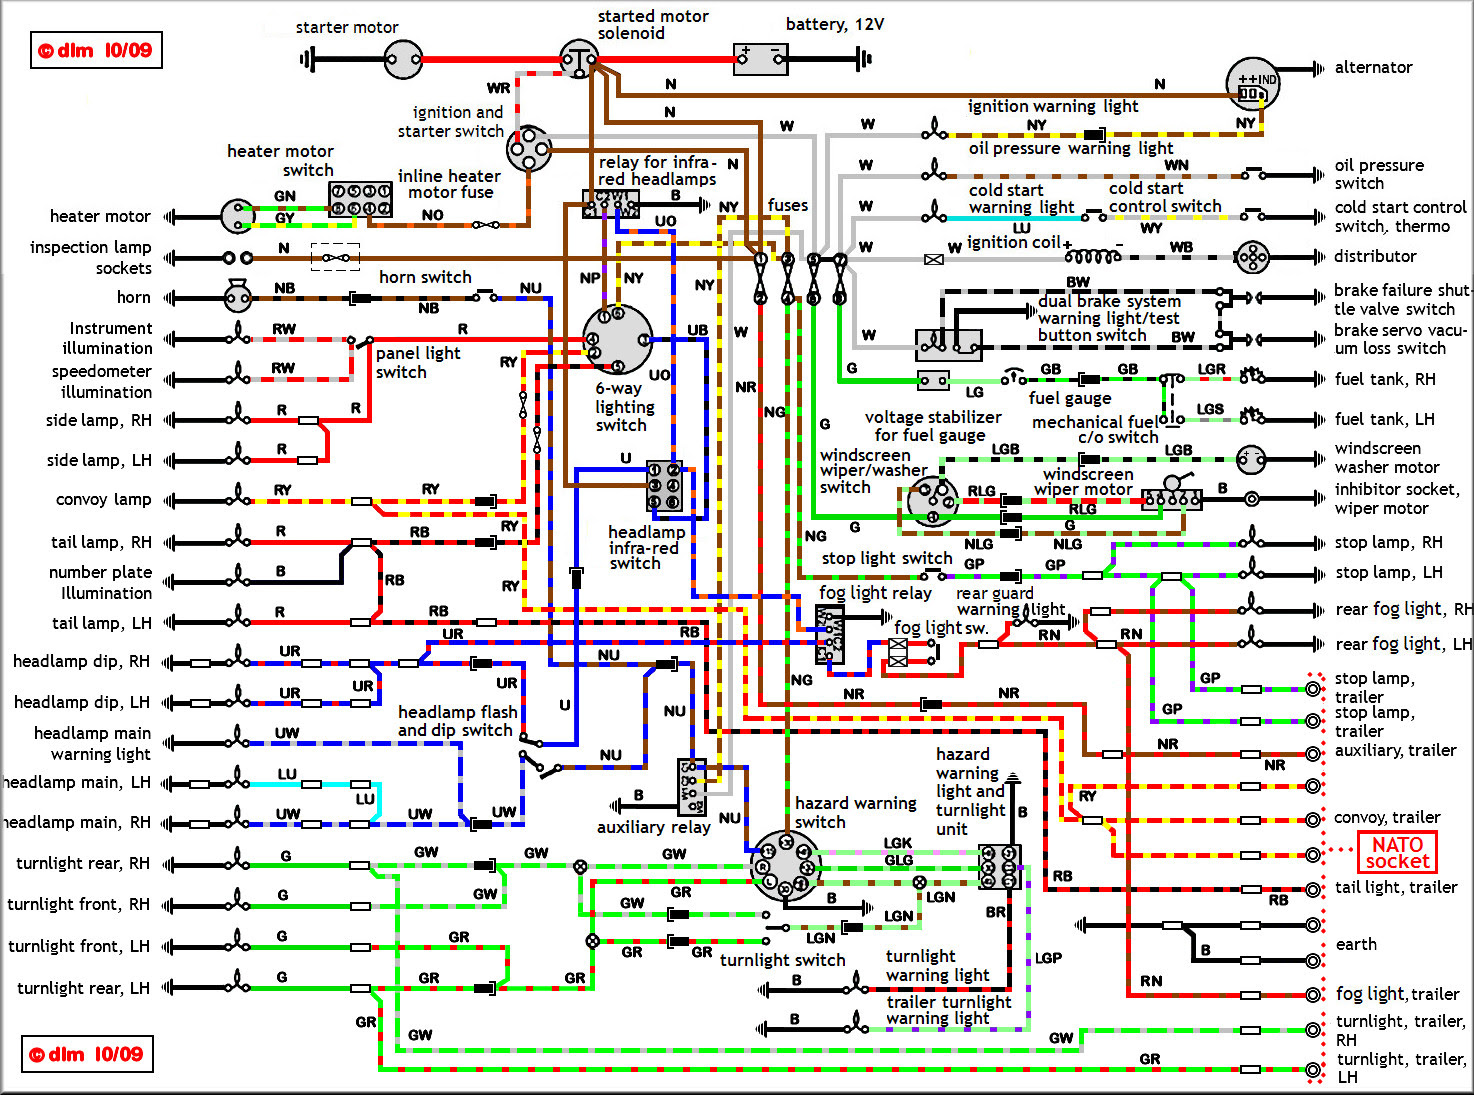 1995 Land Rover Discovery Fuse Diagram George Lynch Wiring Diagram Vw T5 Sampwire Jeanjaures37 Fr